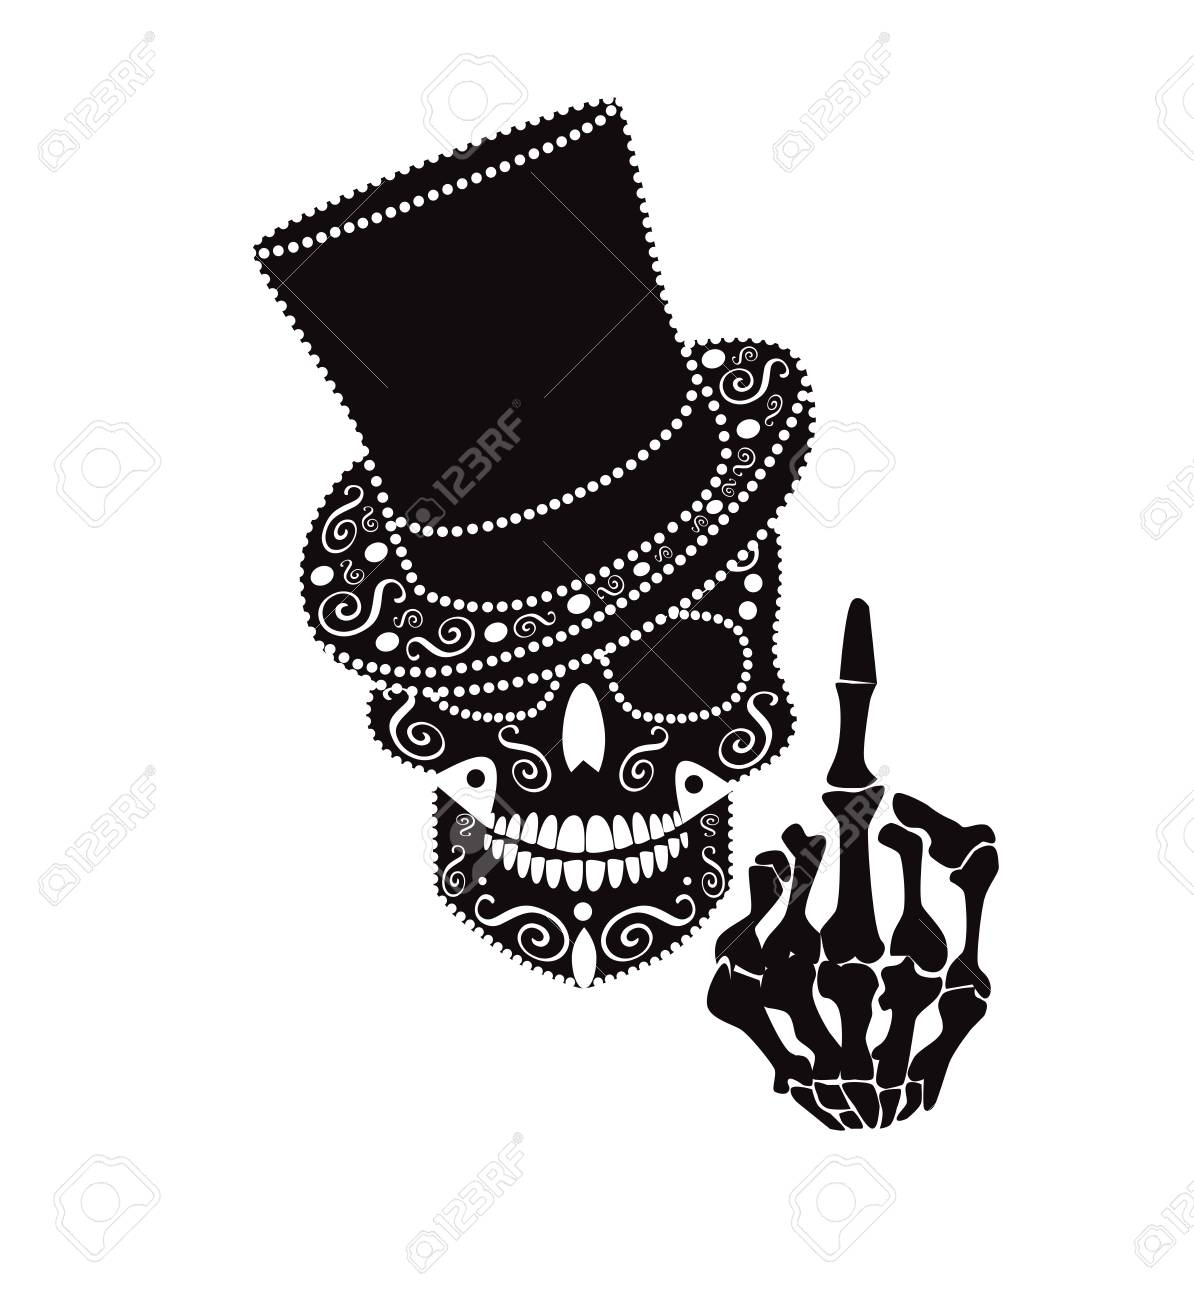 Skull icon gentleman with middle finger and cylinder hat - 103488929